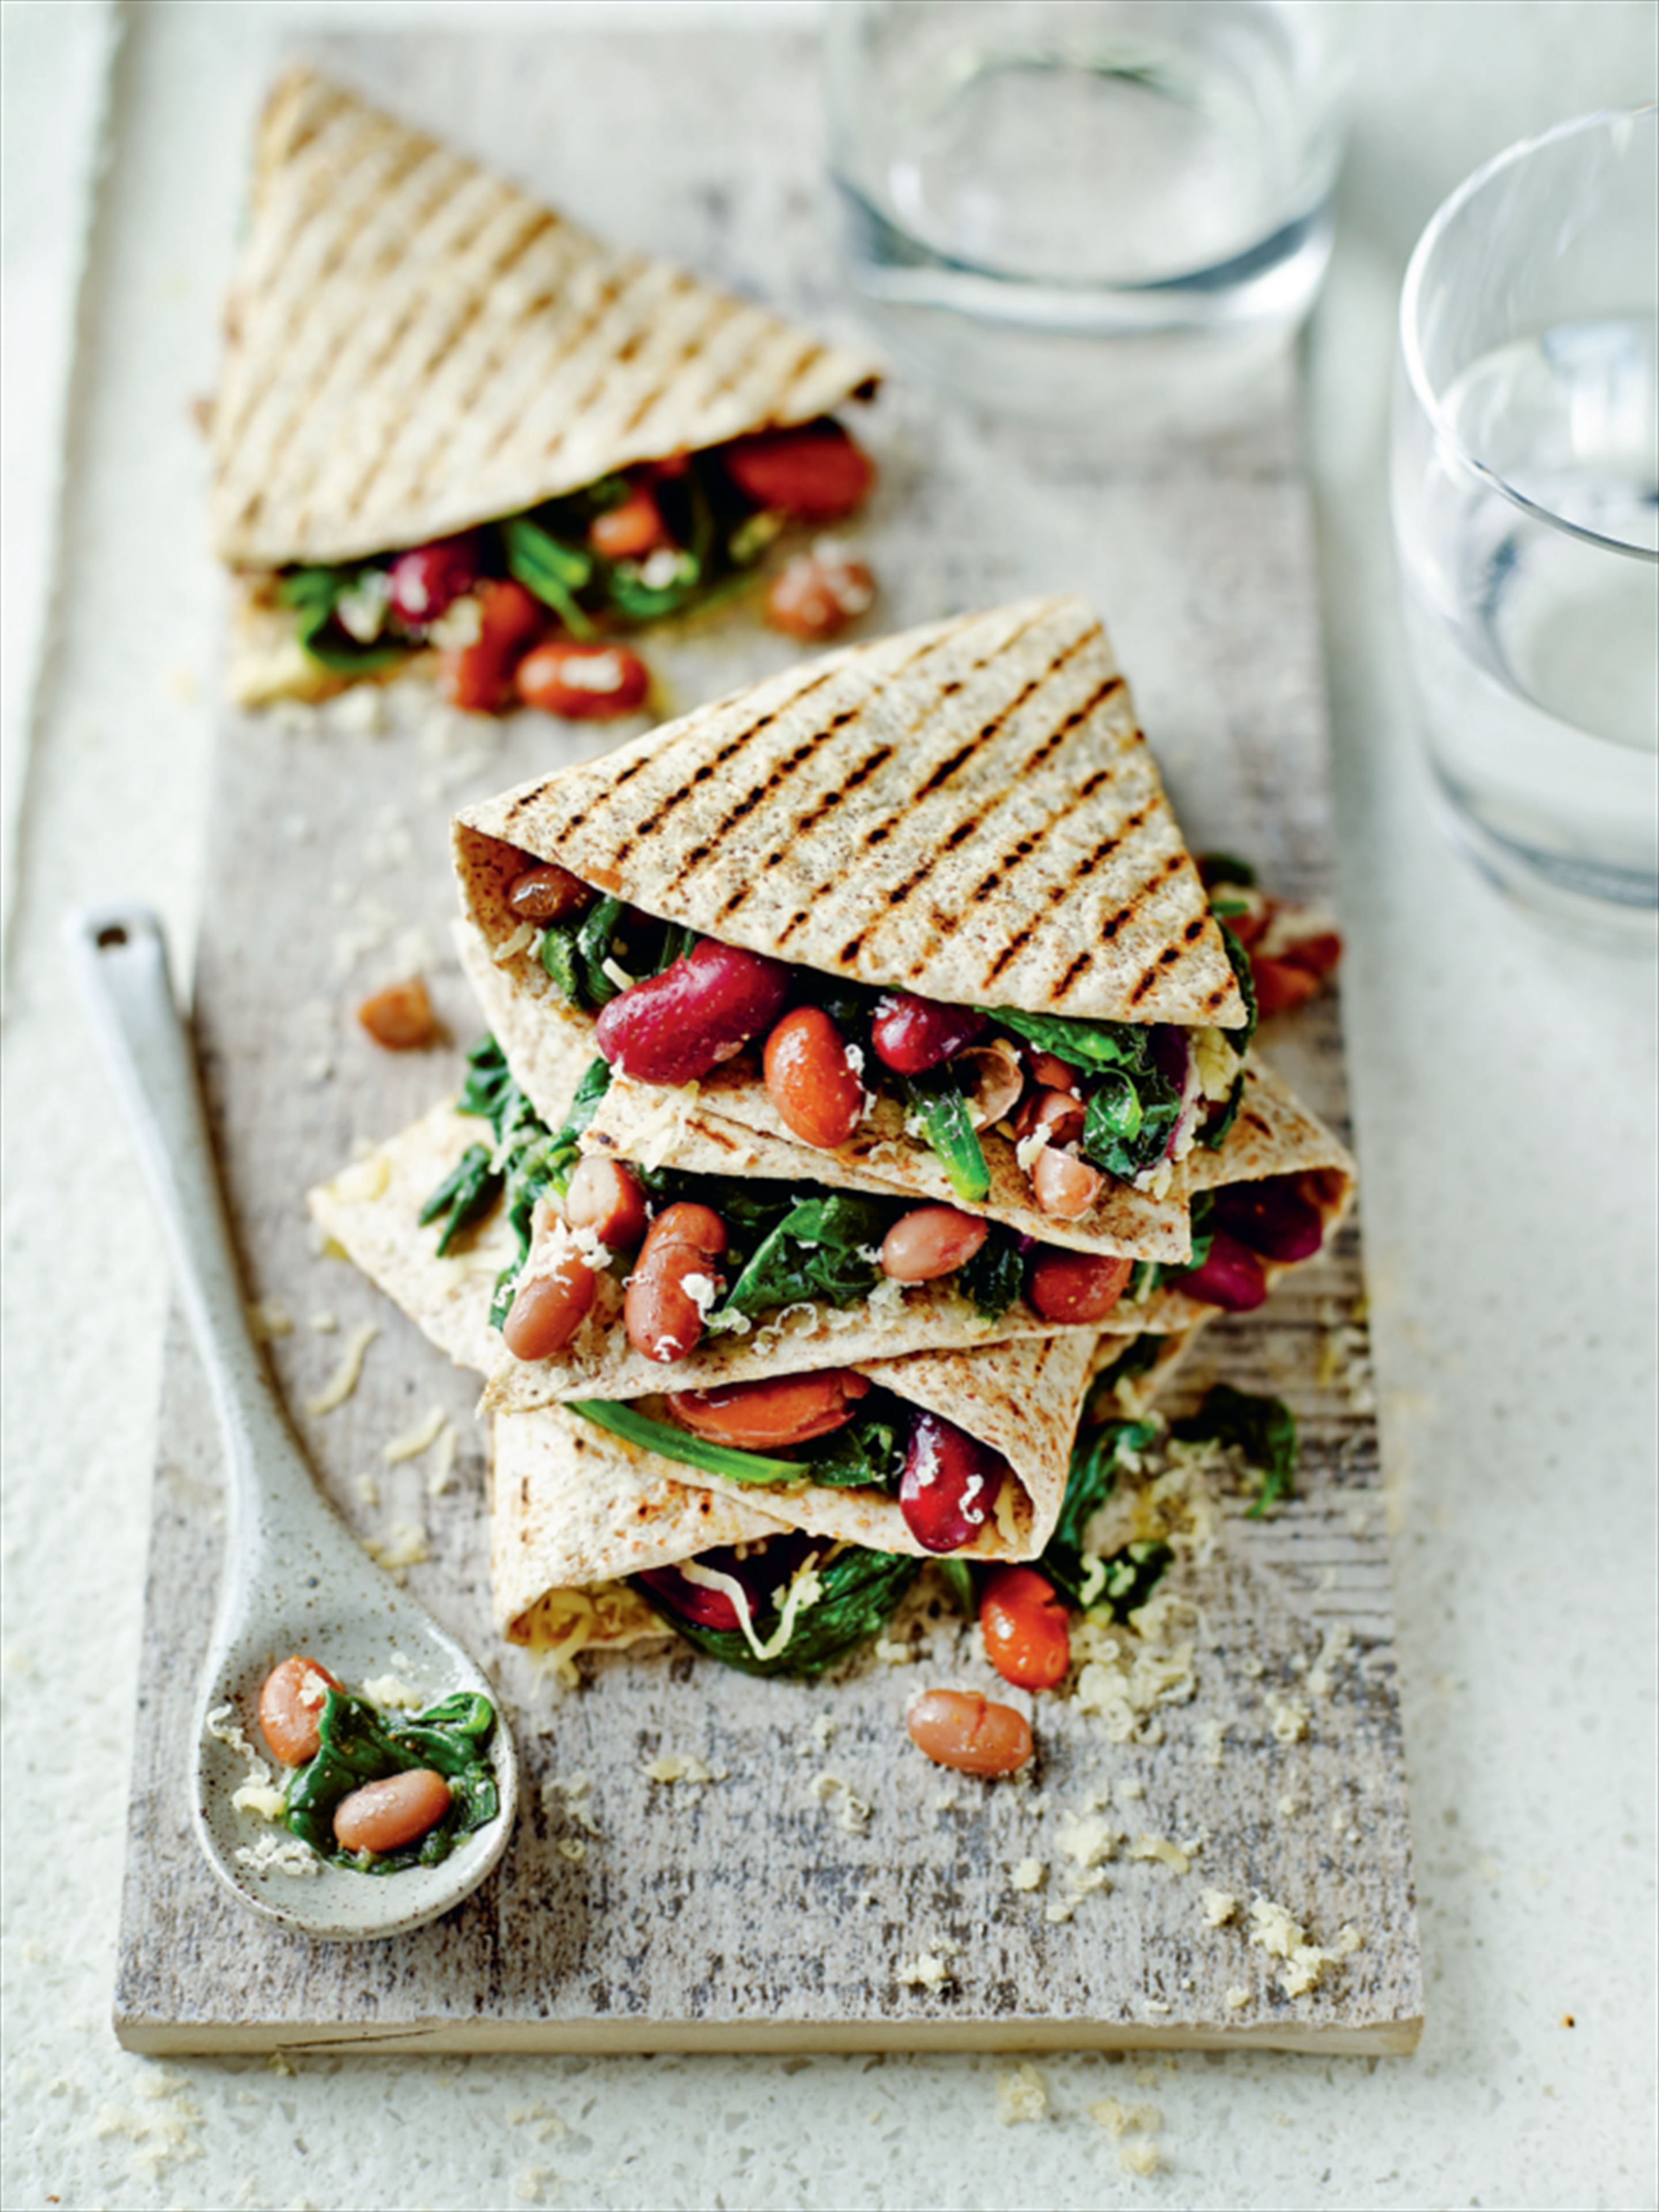 Spinach and mixed bean quesadillas